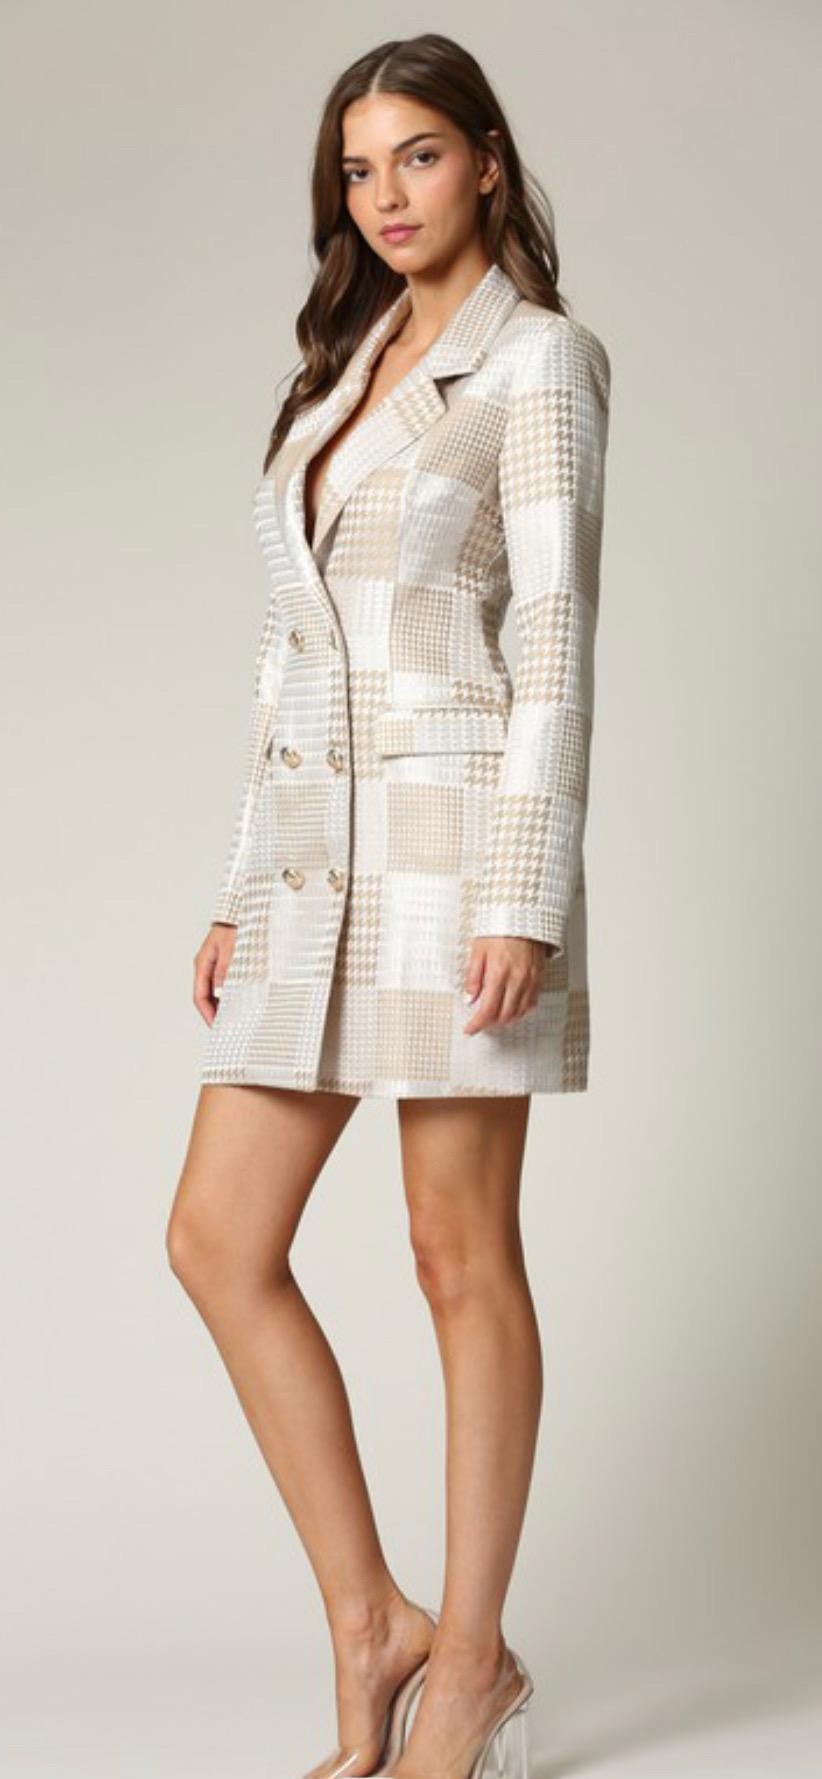 Chel's Jacquard Blazer Dress